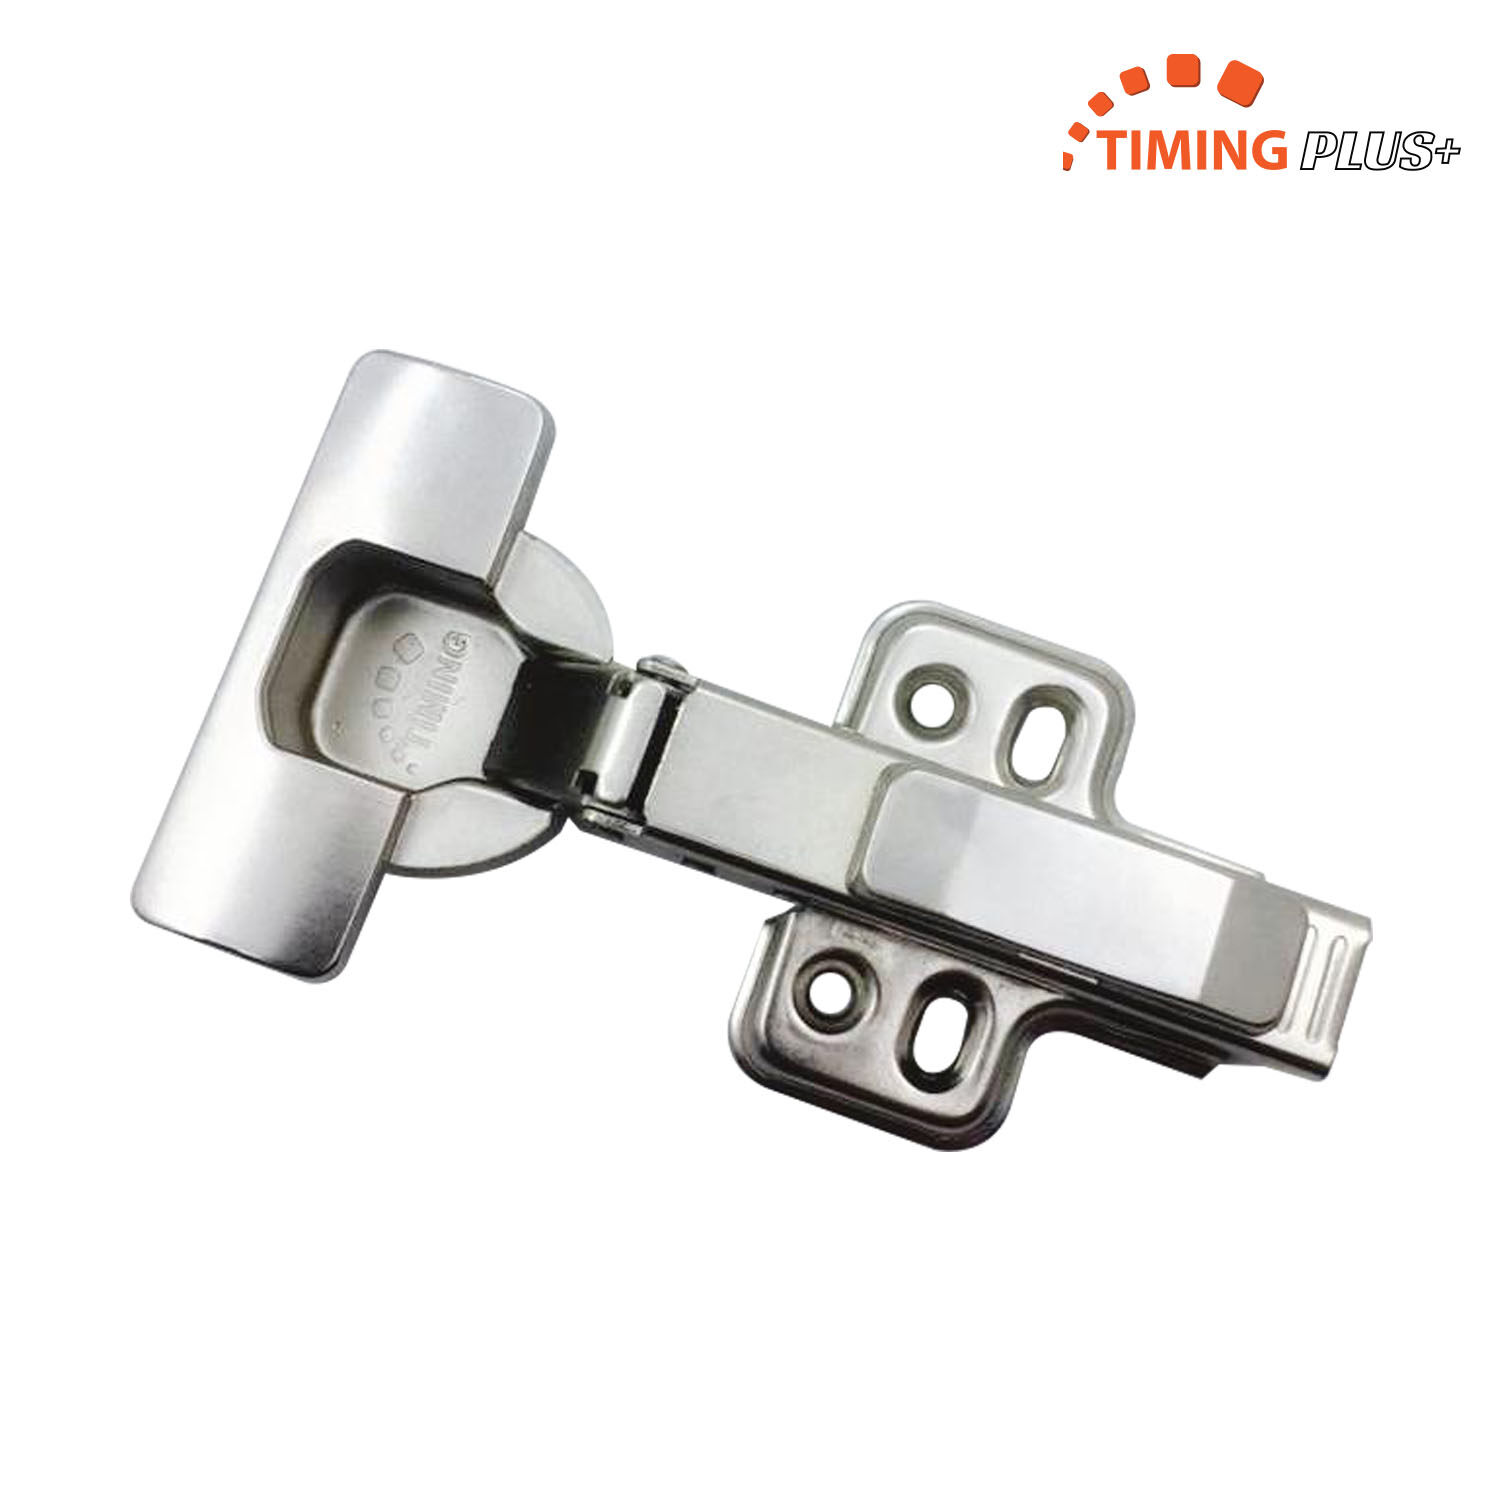 Heavy Duty System soft close hinges